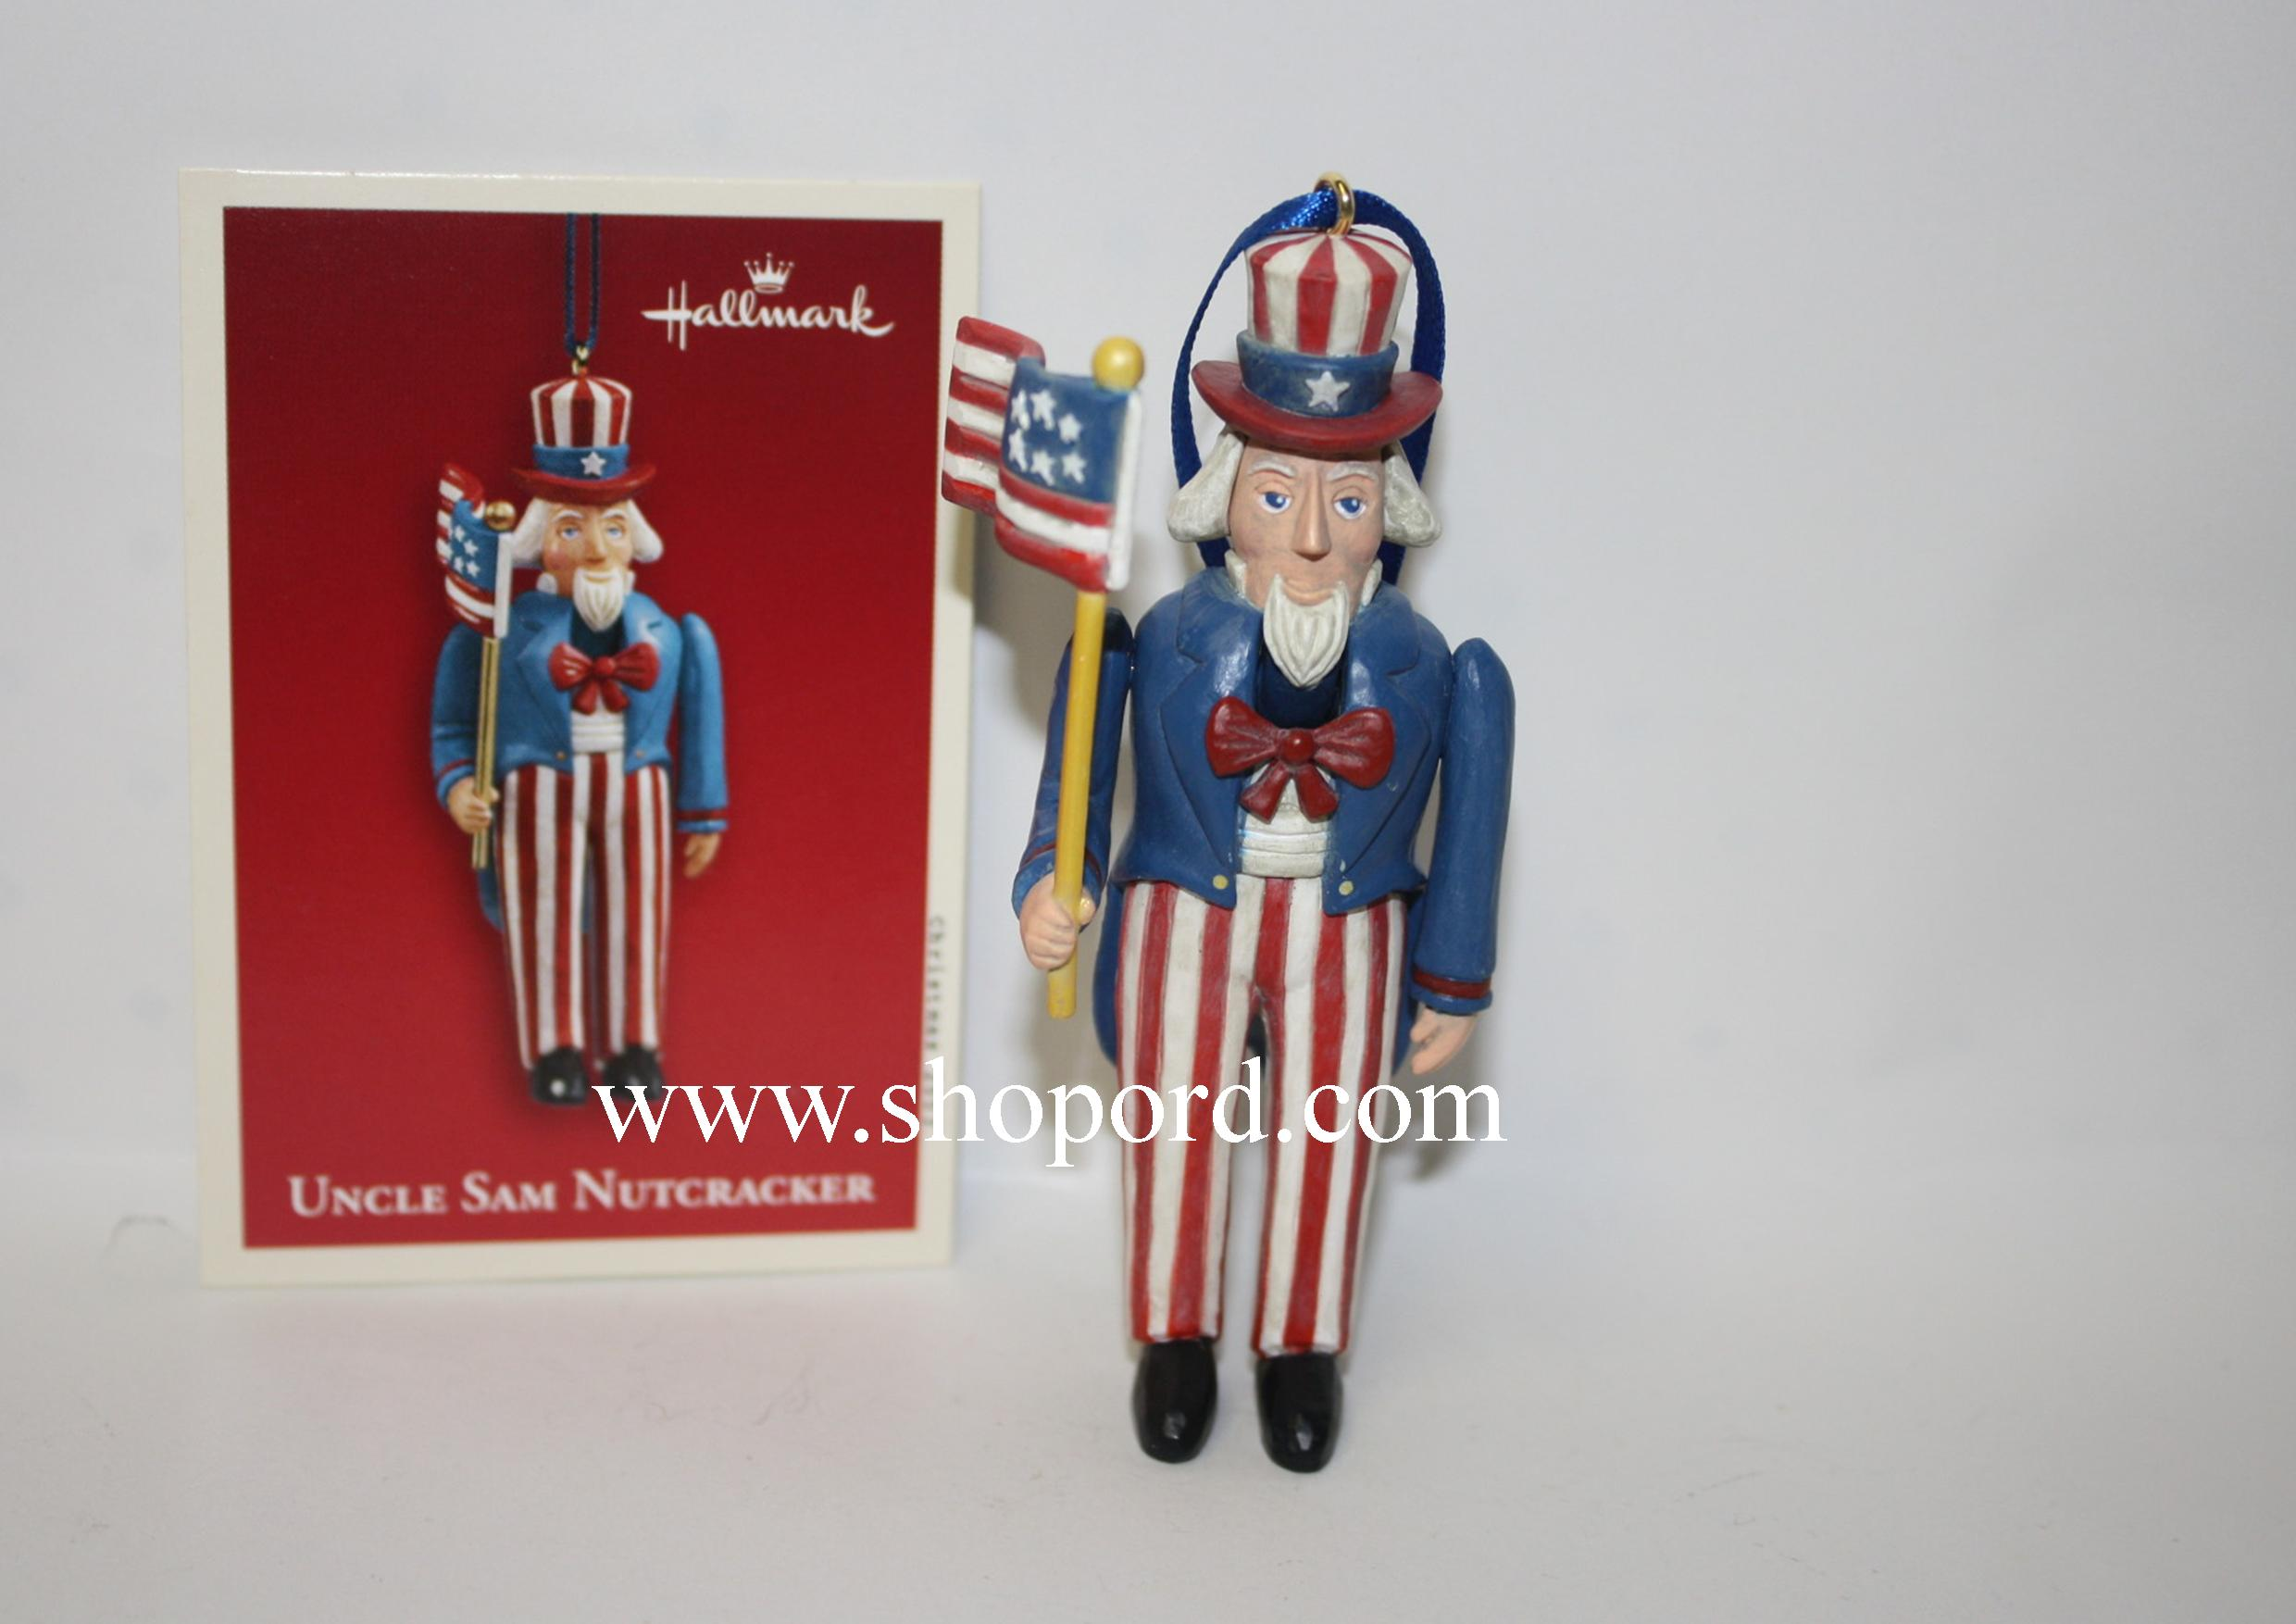 Hallmark 2003 Uncle Sam Nutcracker Ornament QXG2489